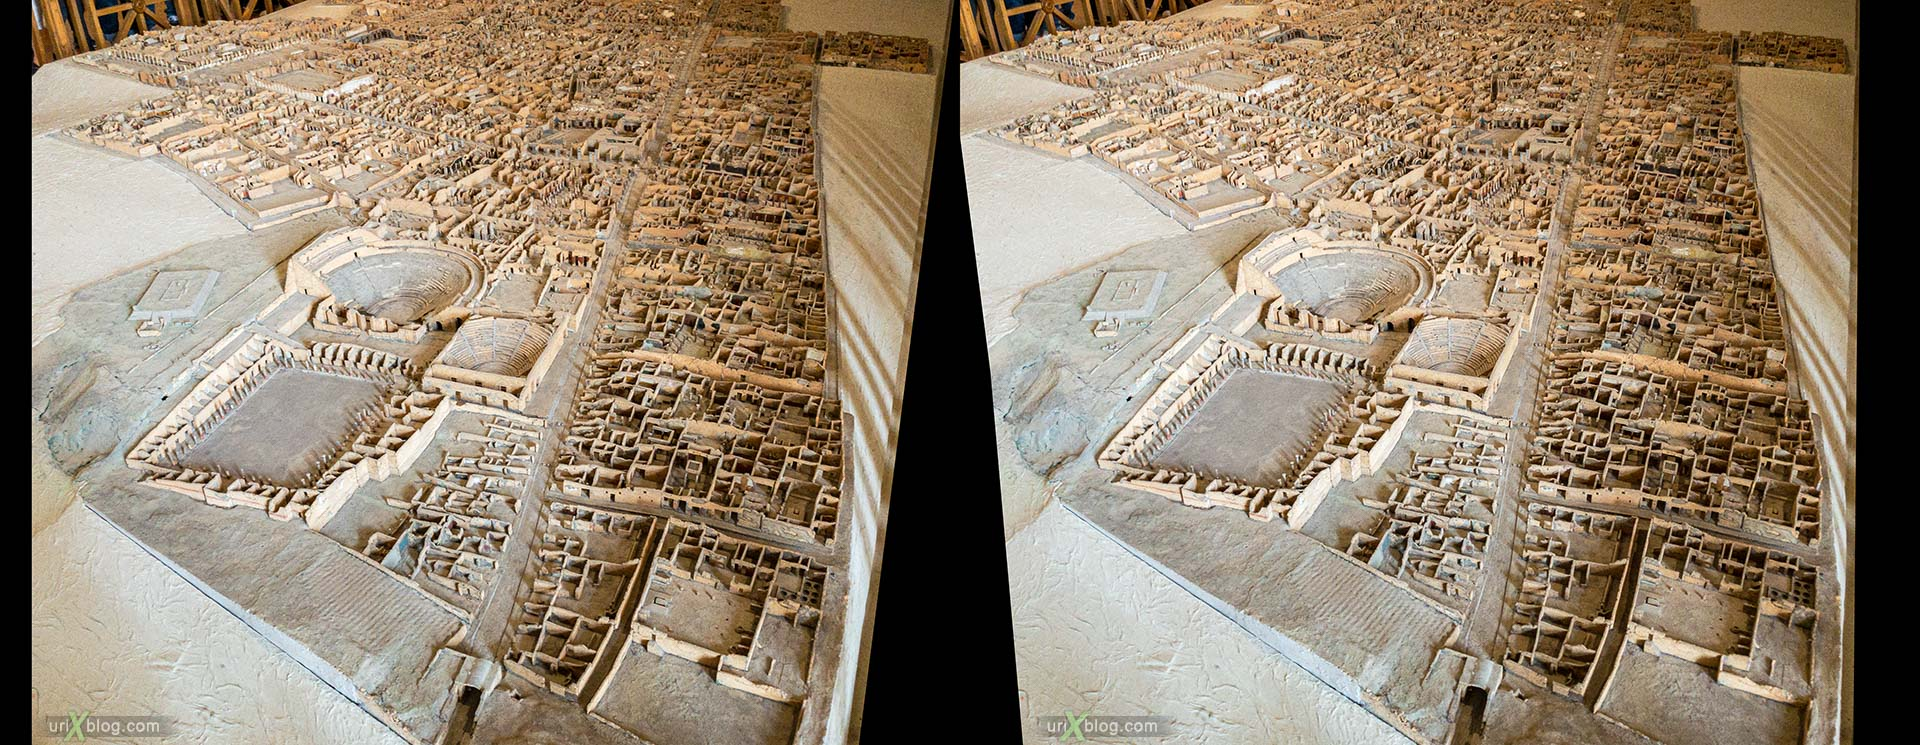 model, map, National Archaeological Museum of Naples, ancient Rome, Pompei, exhibition, Naples, Italy, 3D, stereo pair, cross-eyed, crossview, cross view stereo pair, stereoscopic